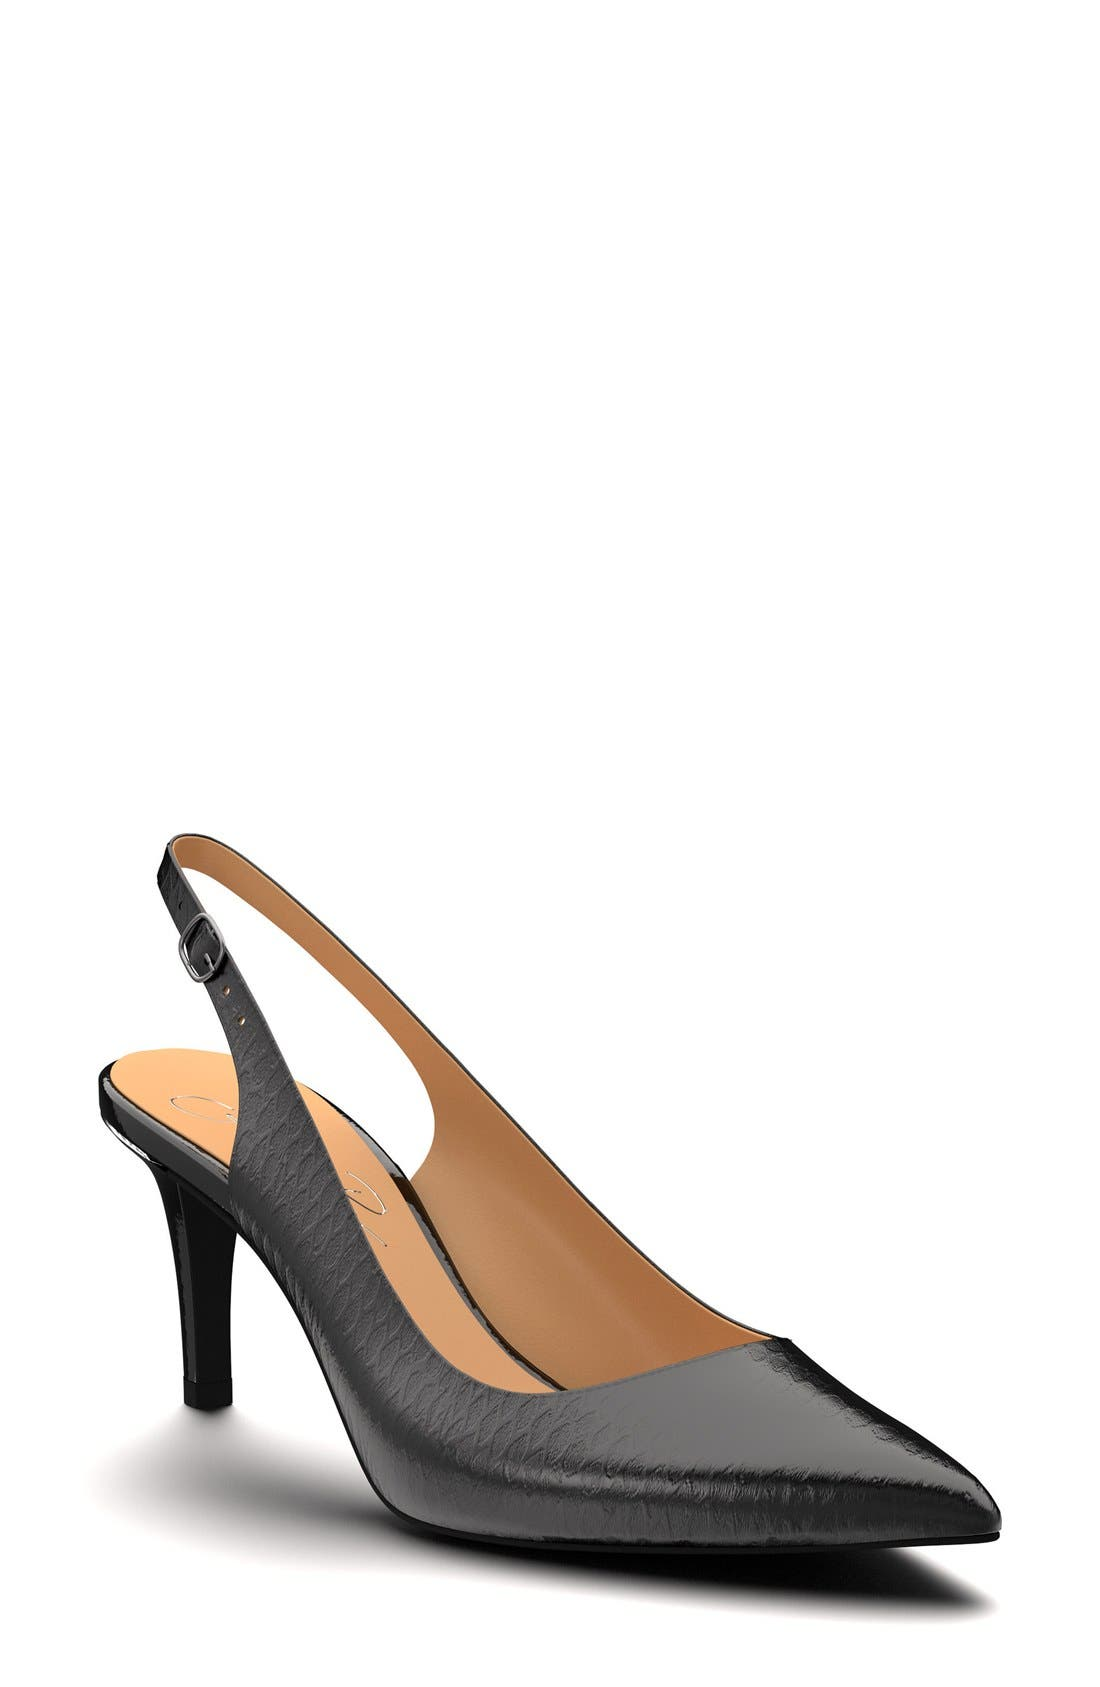 Main Image - Shoes of Prey Slingback Pump (Women)